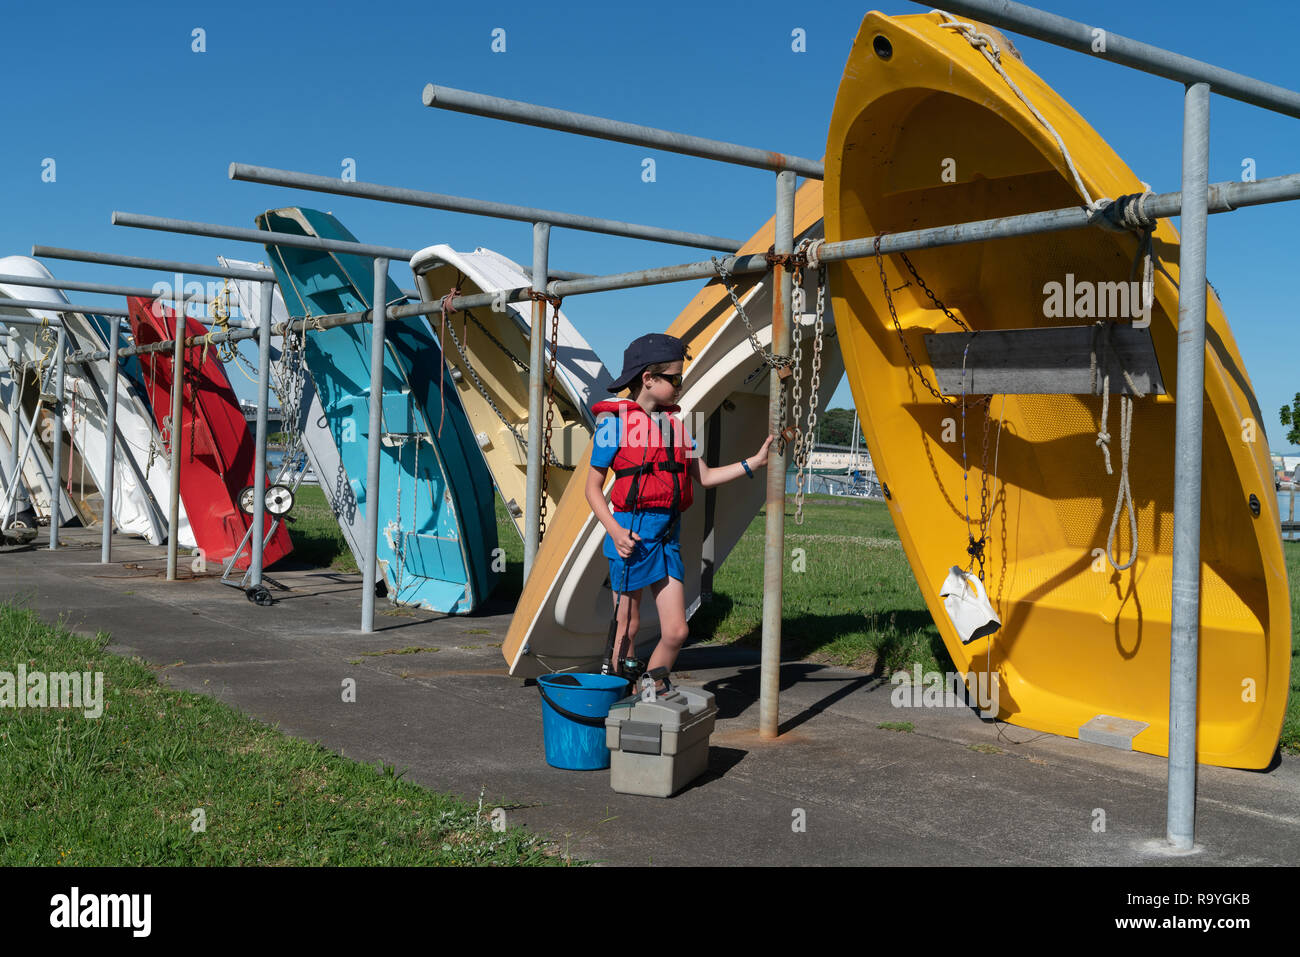 Small boy in red life-jacket with blue bucket and fishing gear waits patiently by dinghy to go fishing at Tauranga marina, New Zealand. - Stock Image